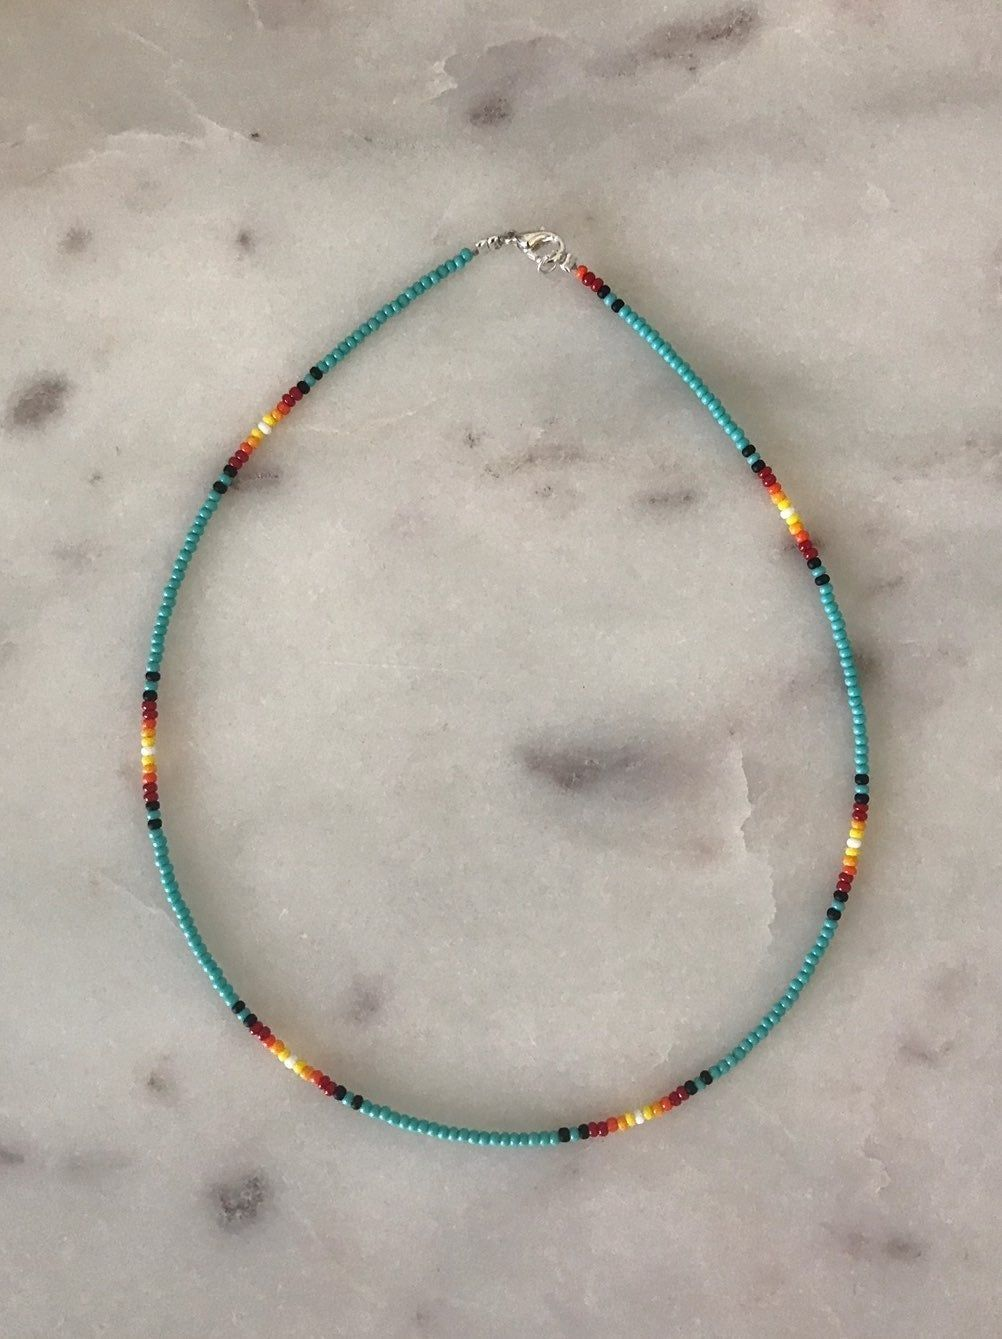 Silver Tone Turquoise Seed Bead Clasp Bracelet 8 Inches Long Simple Vintage Costume Jewelry Gift Ideas